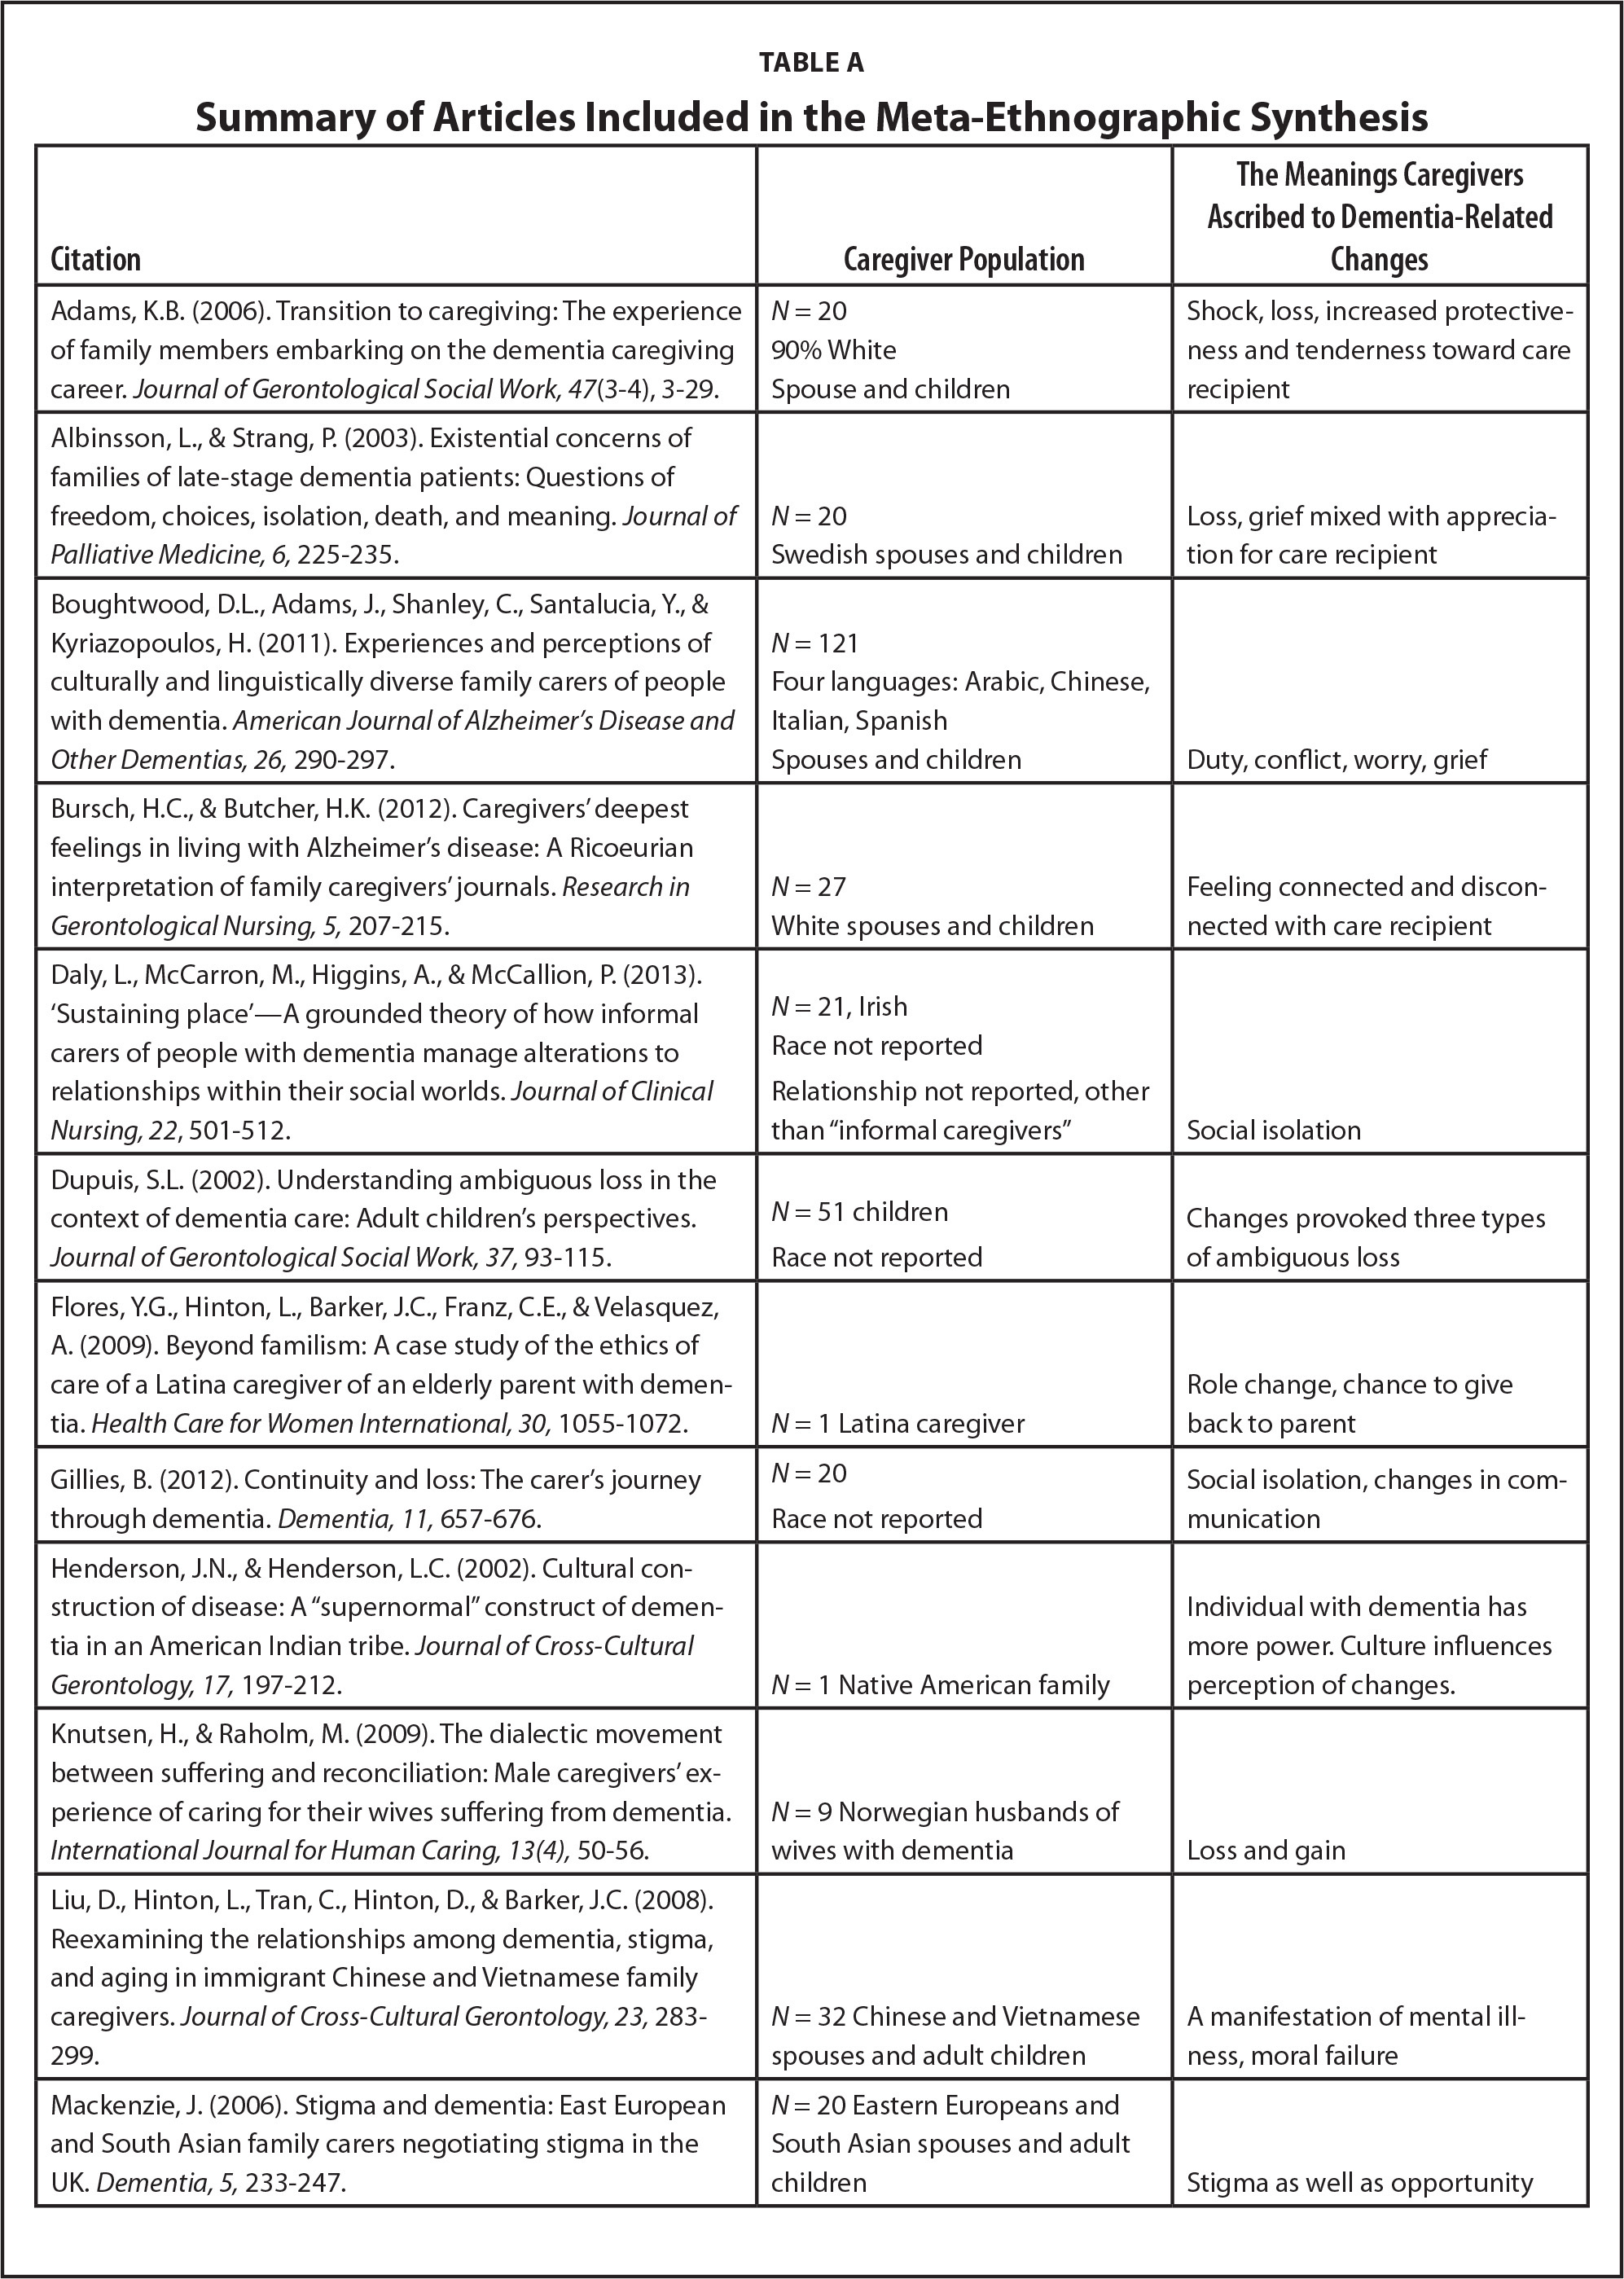 the meanings caregivers ascribe to dementia related changes in table a summary of articles included in the meta ethnographic synthesis